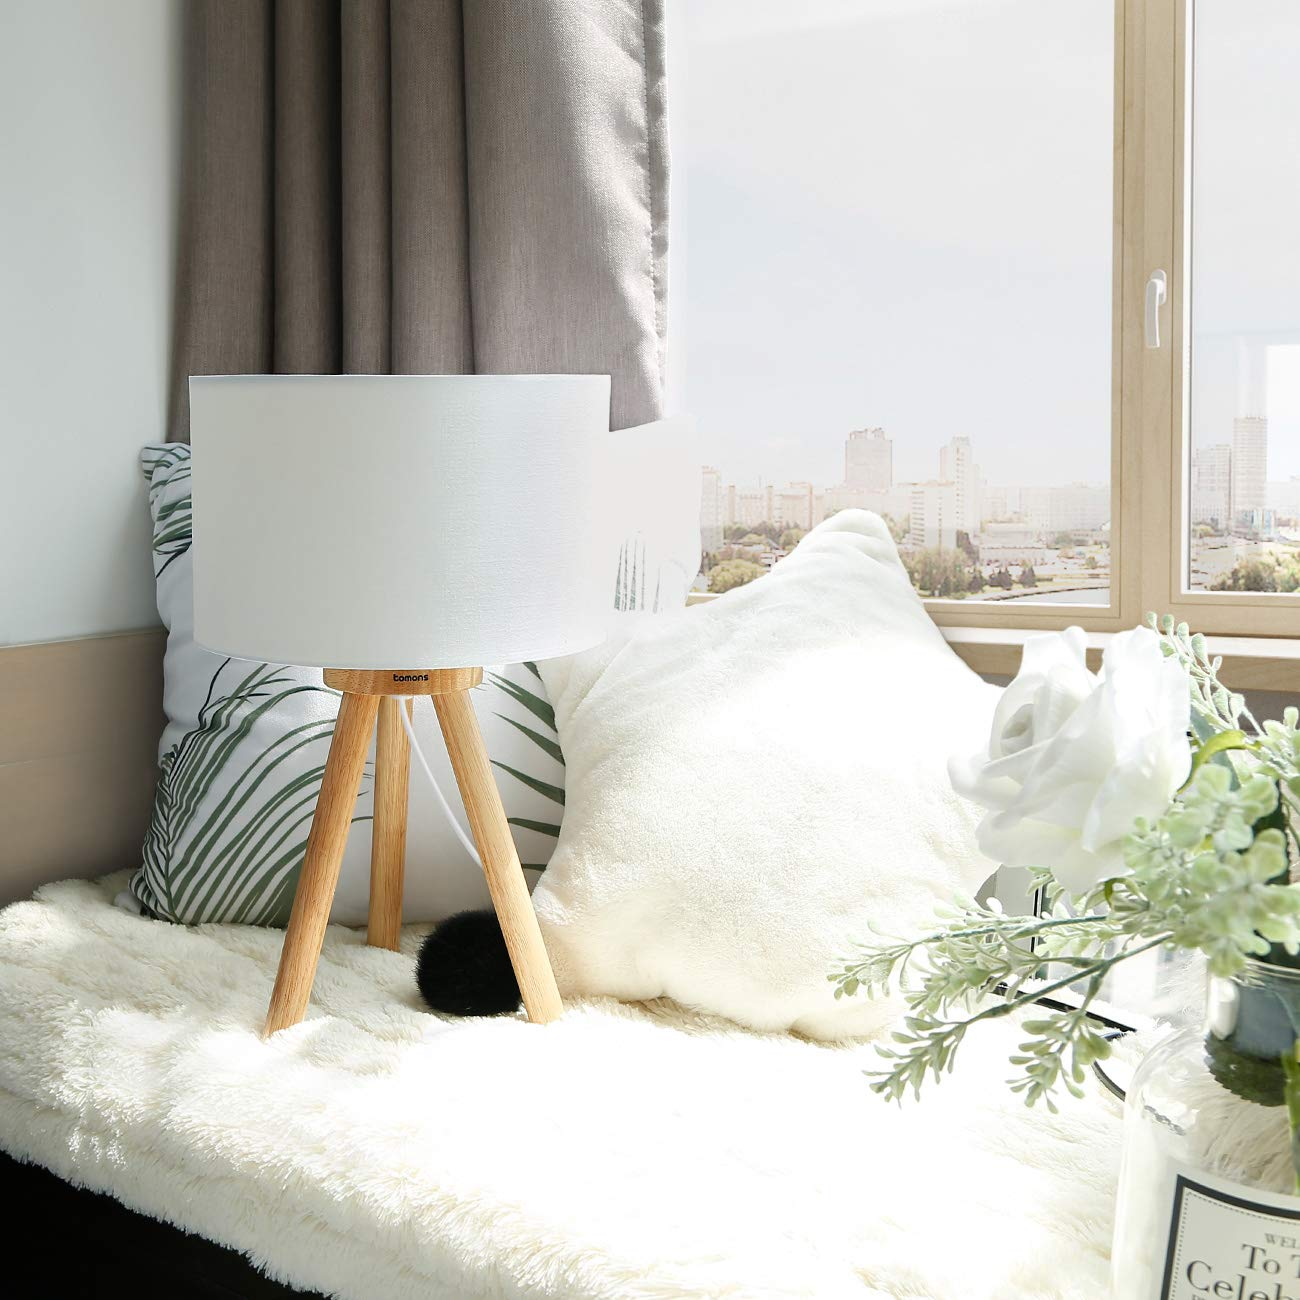 Tomons Wood Tripod Bedside Lamp, Simple Design with Soft Light for Bedroom Decorated in Warm and Cozy Ambience, Polyester White Fabric Lampshade, Packaged with 4W LED Bulb, Warm White Light, 39cm High by Tomons (Image #2)